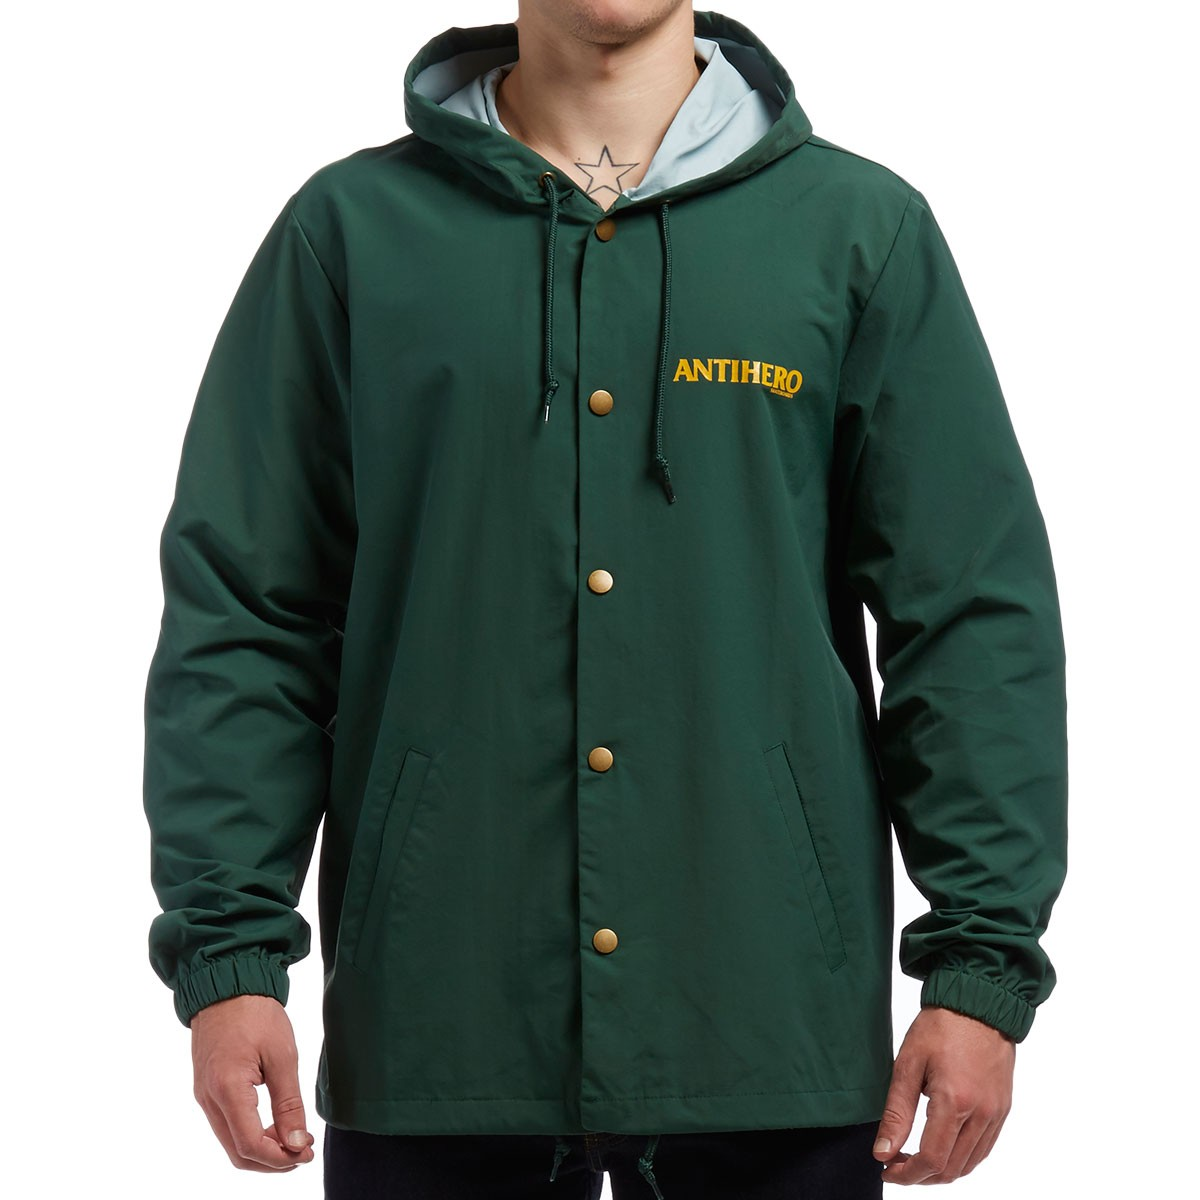 Hero Back Eagle Jacket - Forest Green